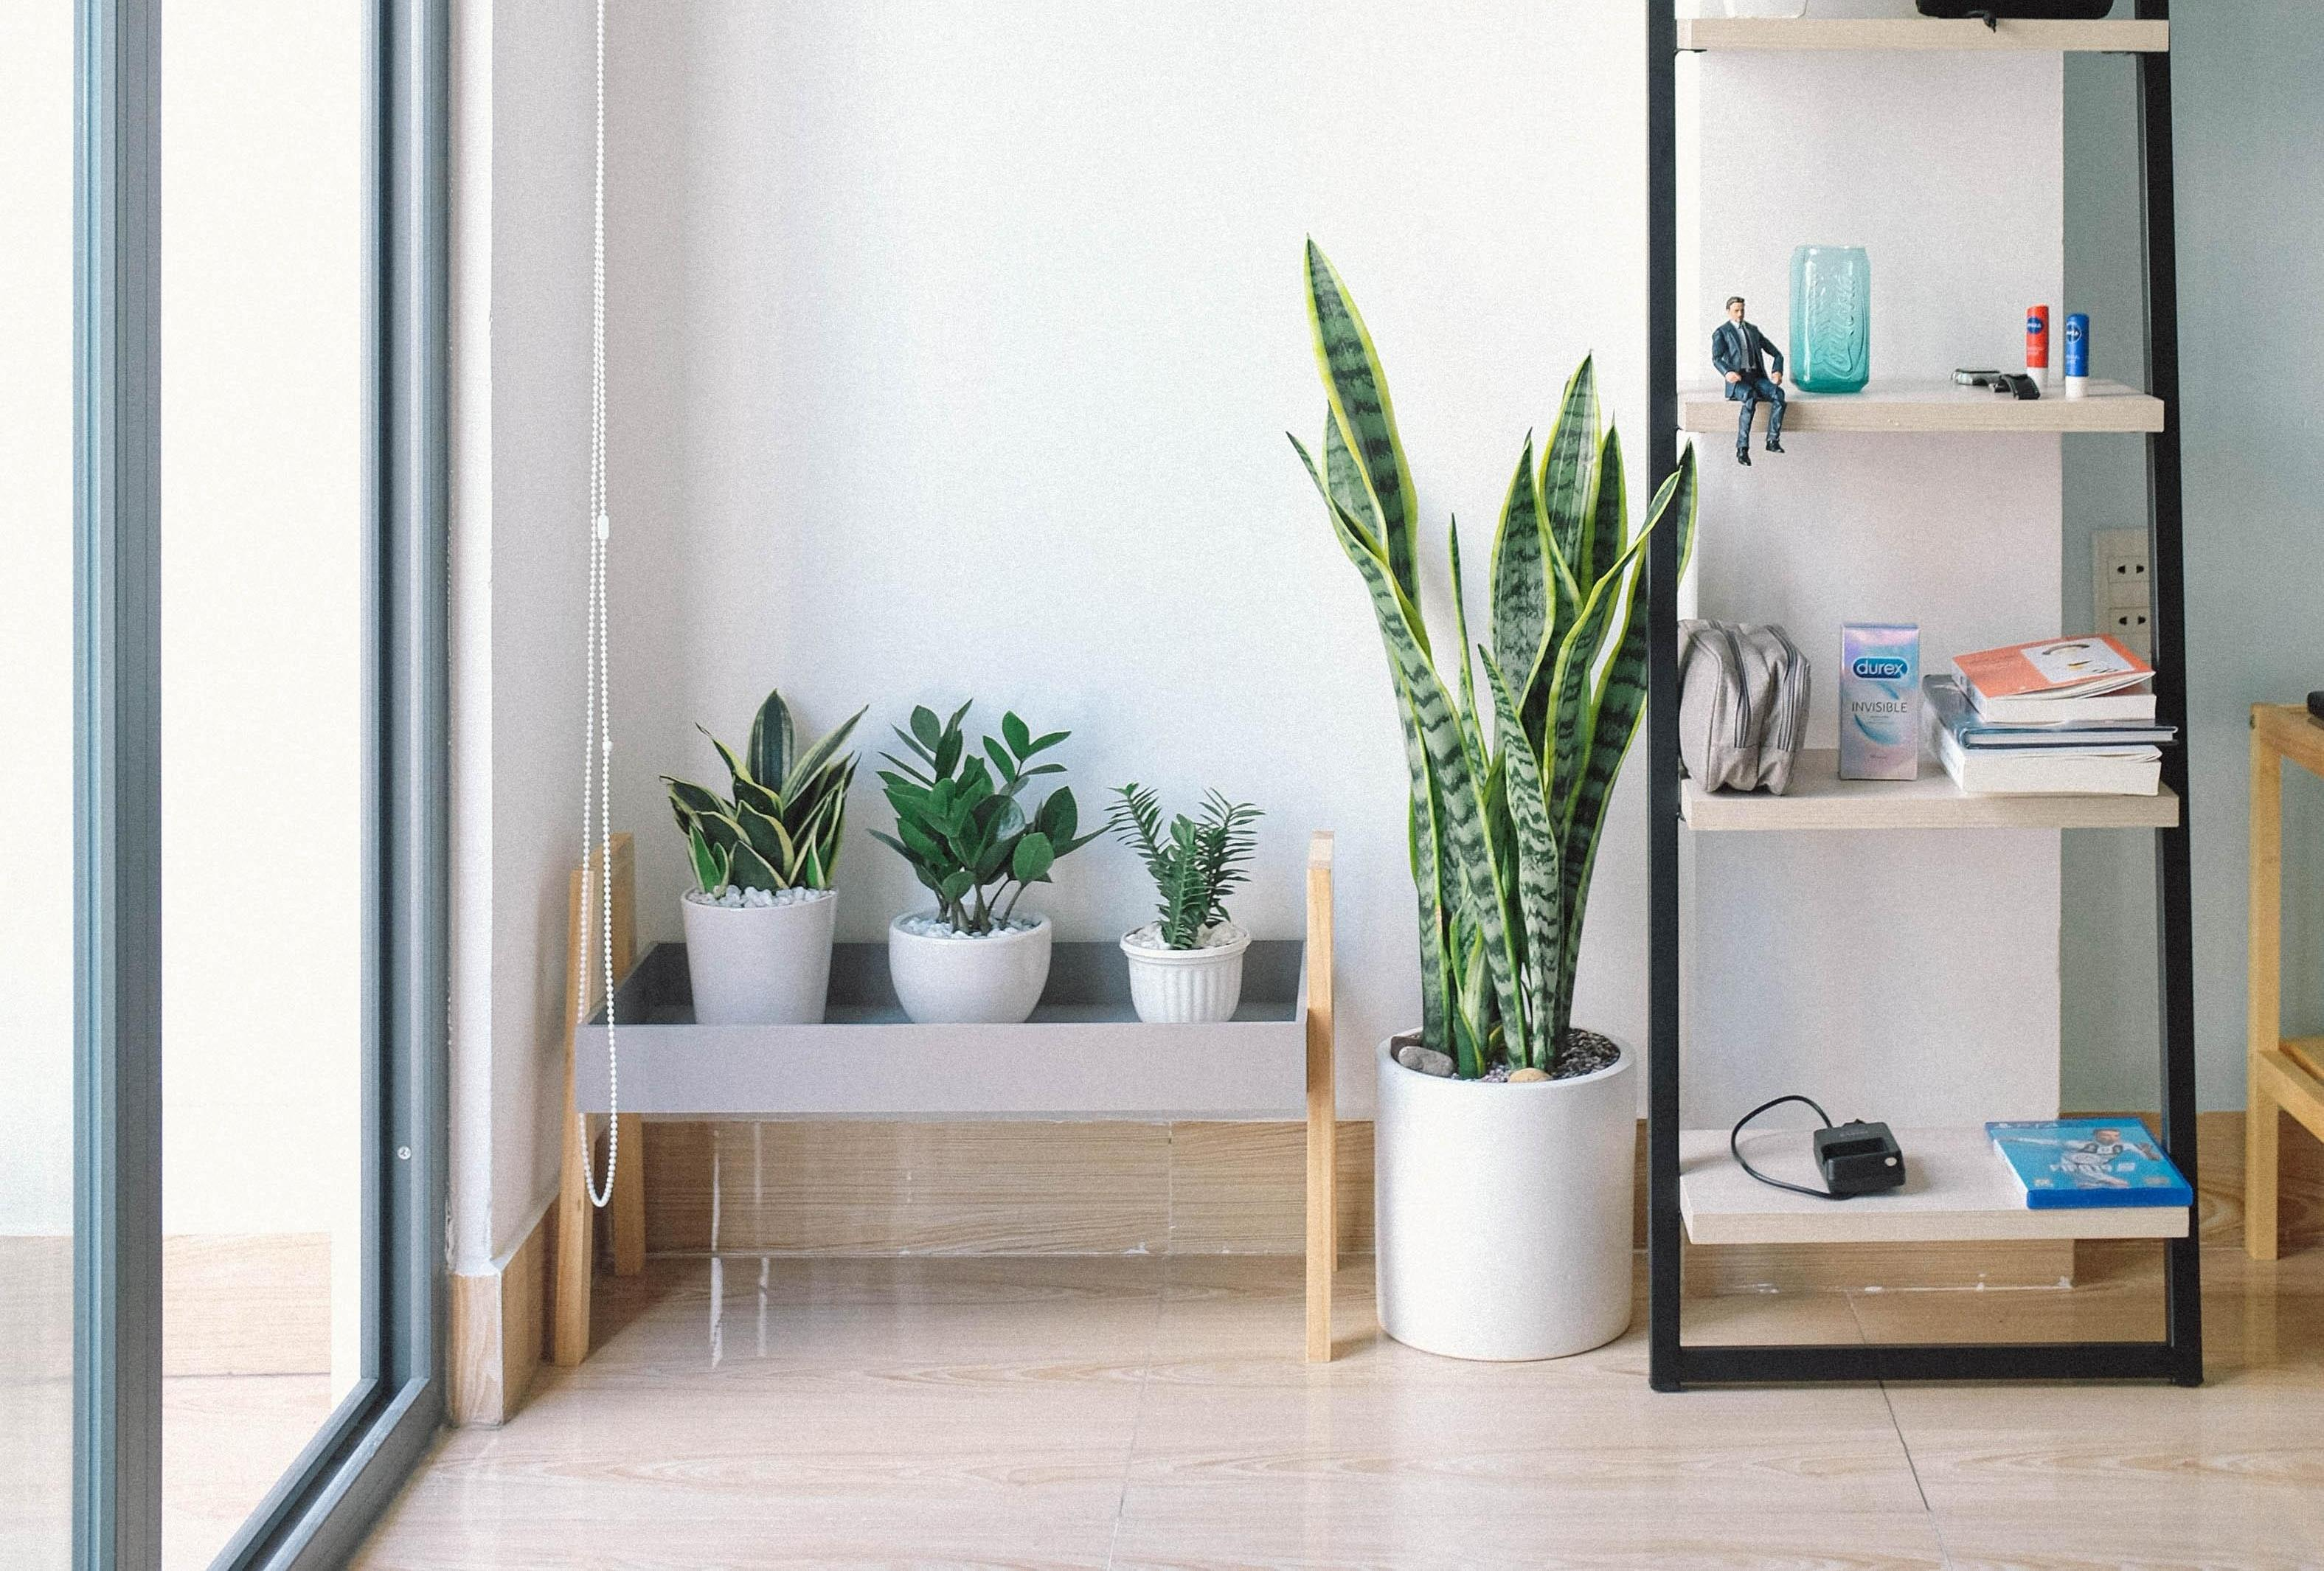 How To Start Living A Minimalist Lifestyle